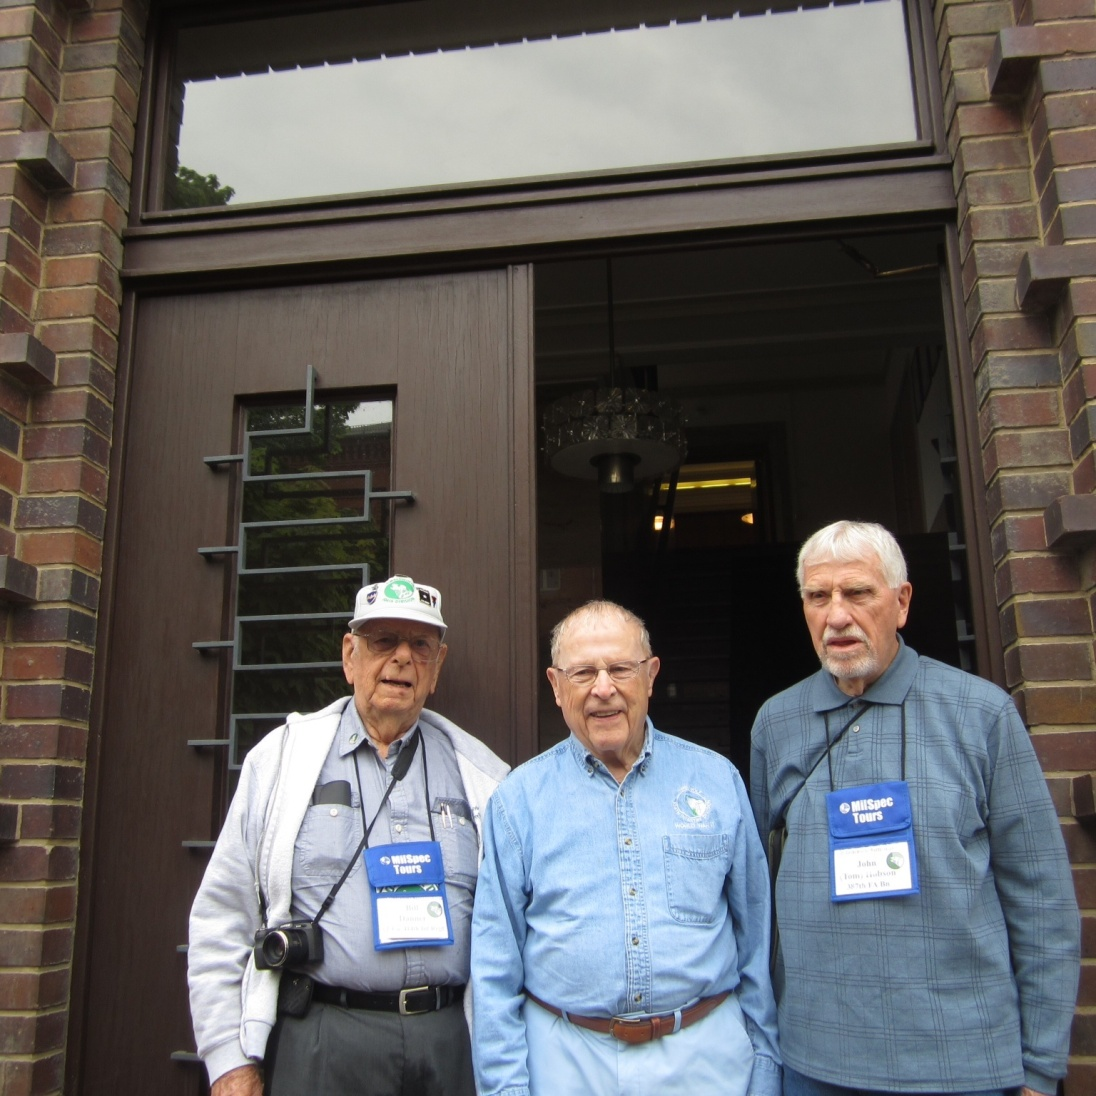 Our three WWII vets in the doorway. Bill, Bob, and Tom.